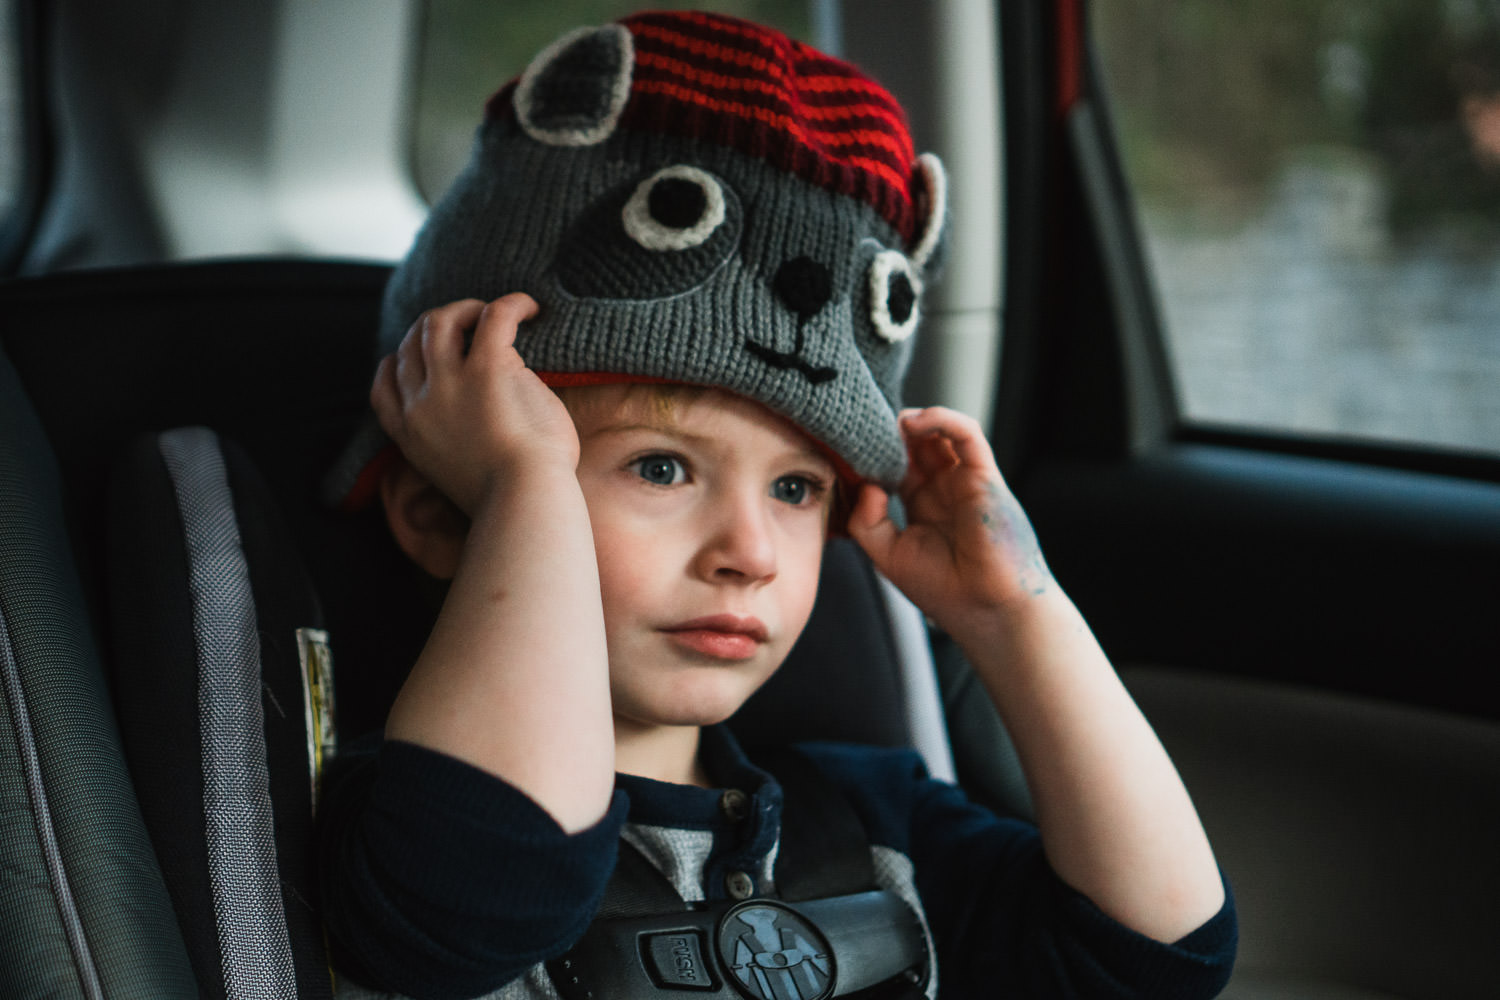 A little boy pulls on a hat in his carseat.